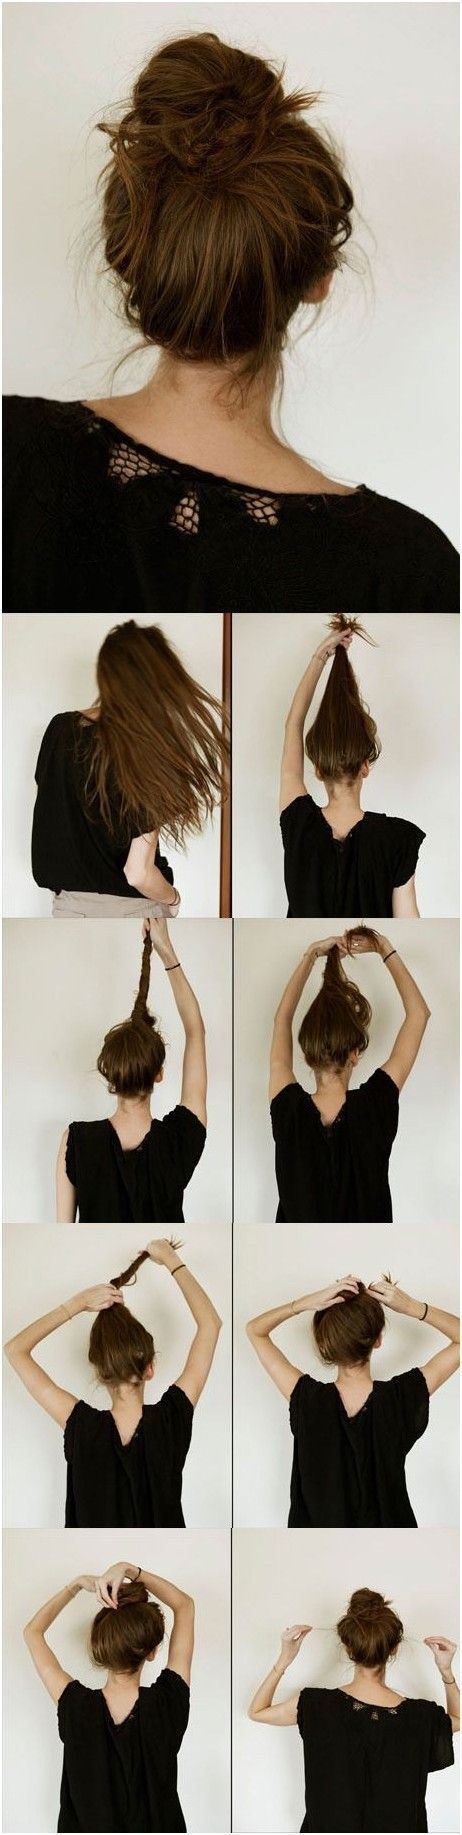 Switch up your long hair style to keep it looking cute and sexy